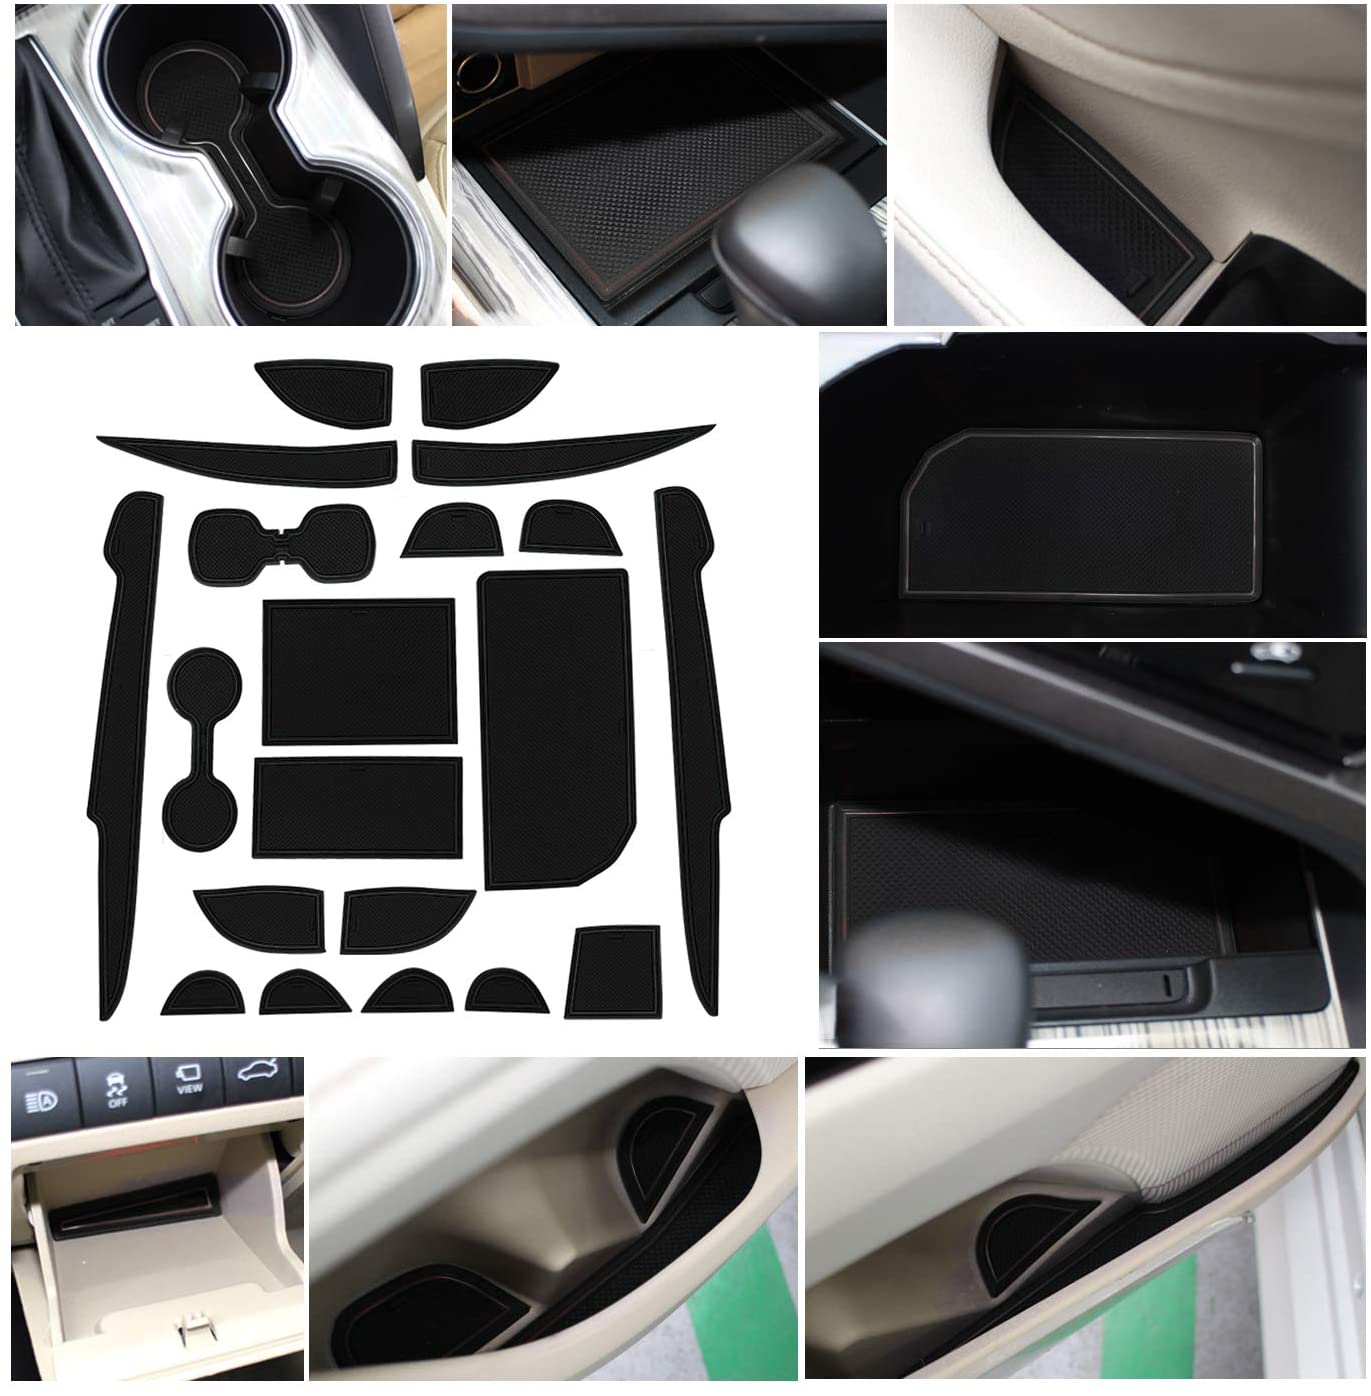 SHAOHAO Toyota Camry Accessories Console Liners Mats Compatible for Toyota Camry Console Groove Insert Liners for Toyota Camry 2018-2020